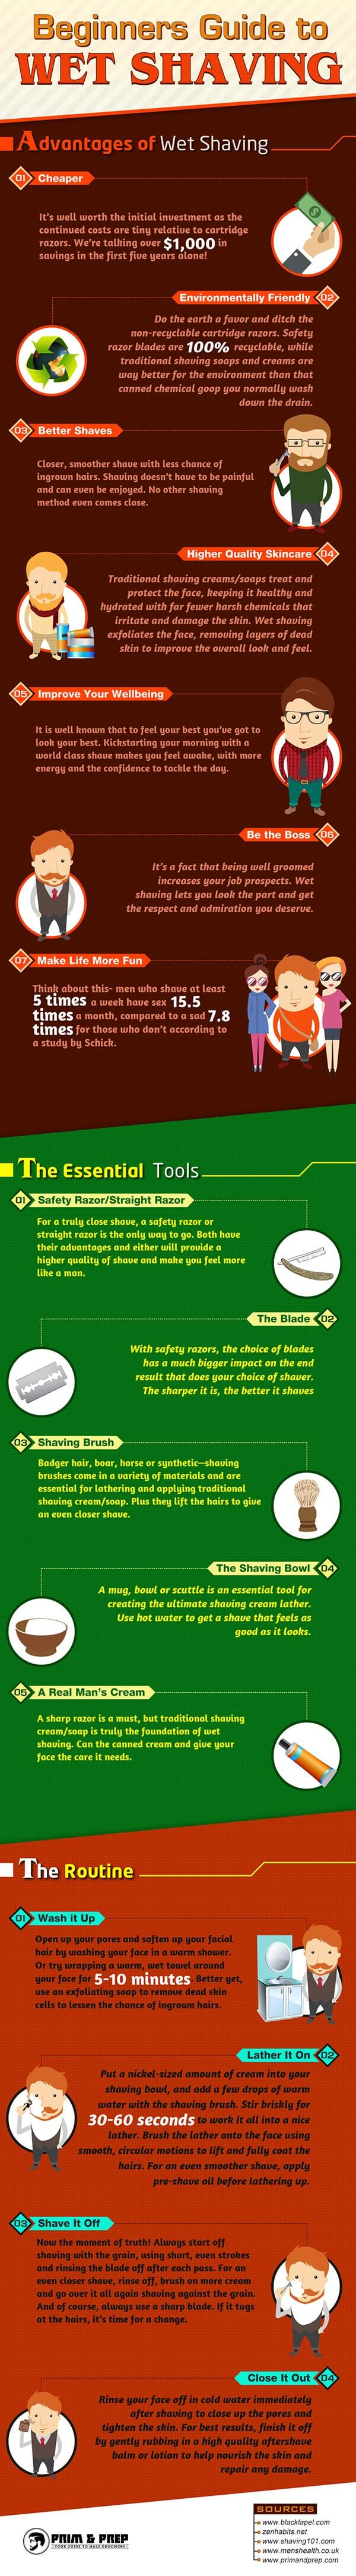 Beginners Guide to Wet Shaving Infographic! (3 Essential Topics) 1